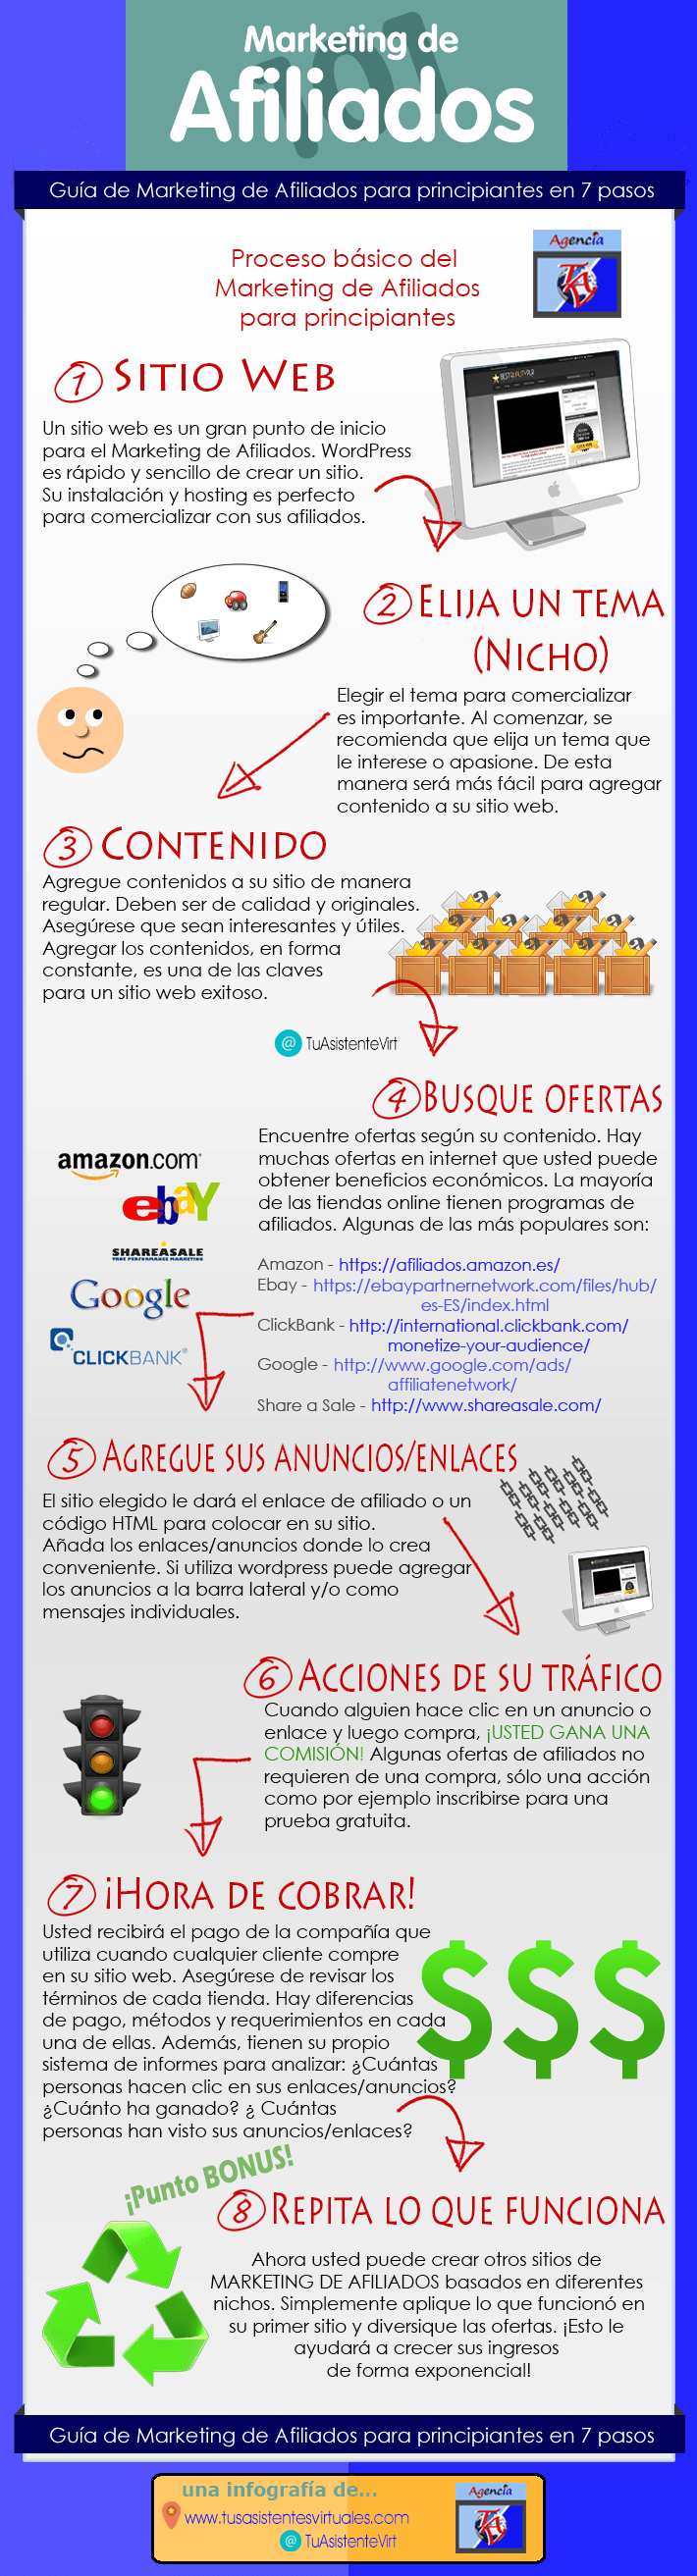 guia-de-implementacion-de-marketing-de-afiliacion-infografia-en-espanol